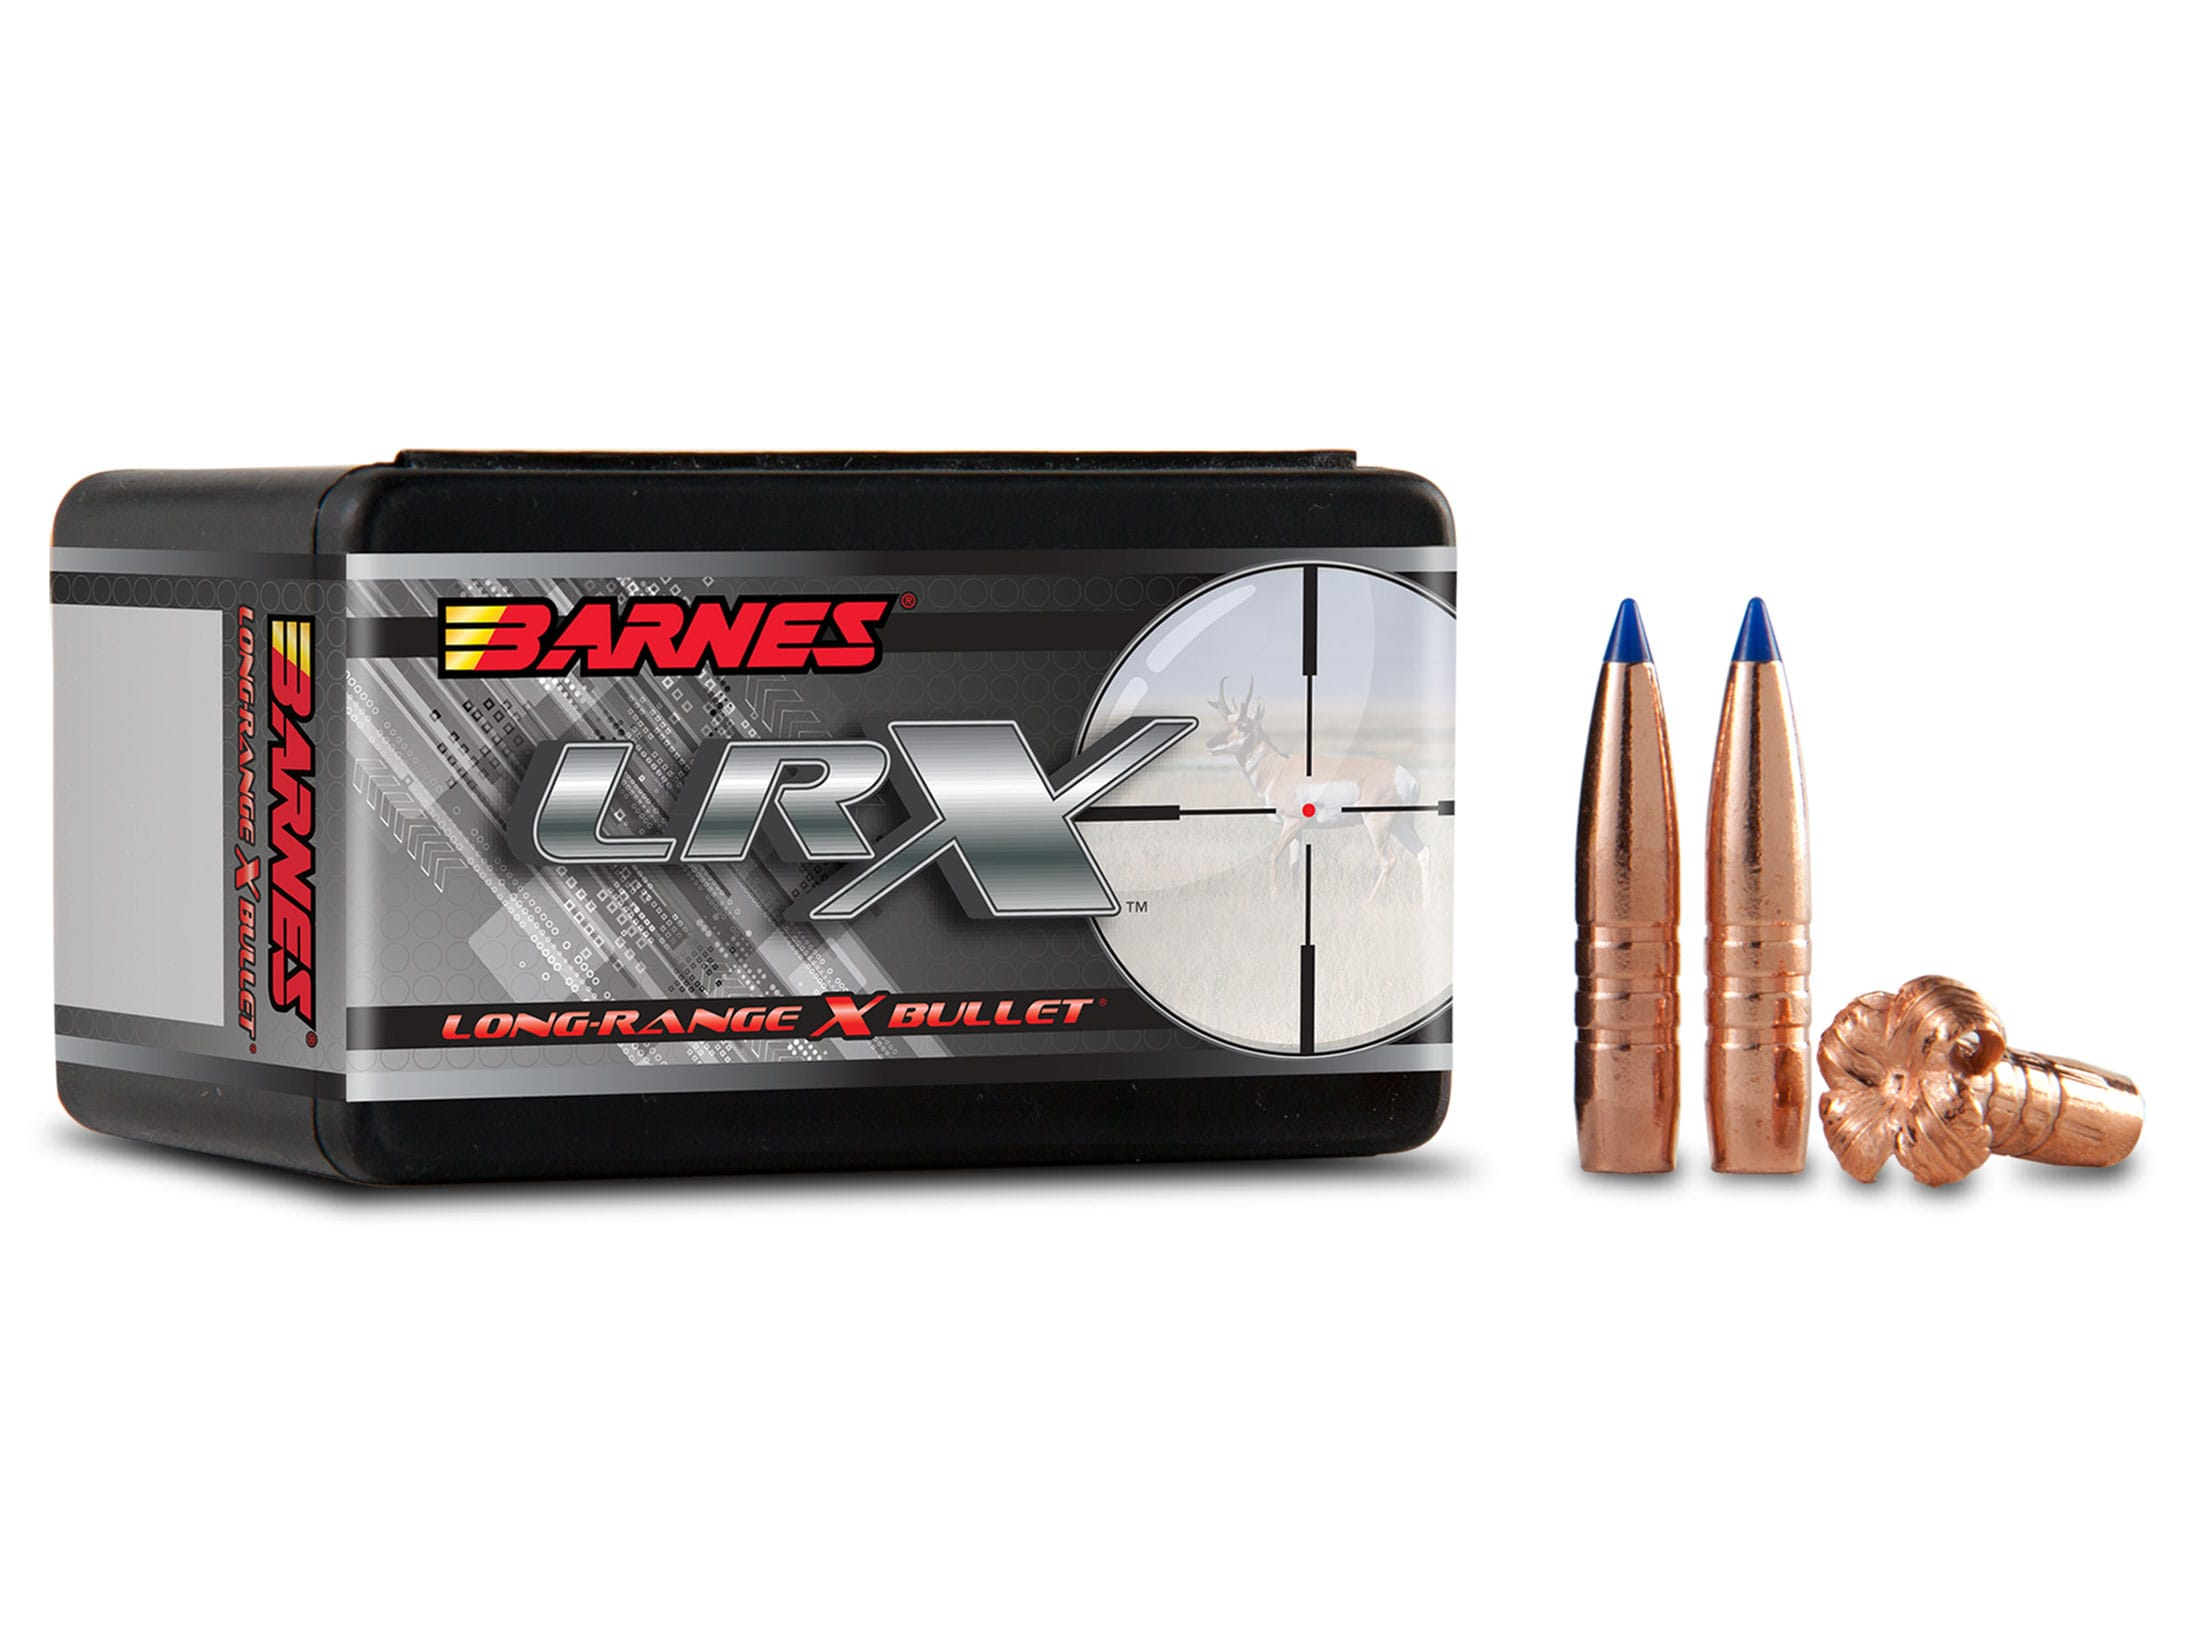 Barnes LRX Long-Range Hunting Bullets 284 Cal 7mm (284 Diameter) 145